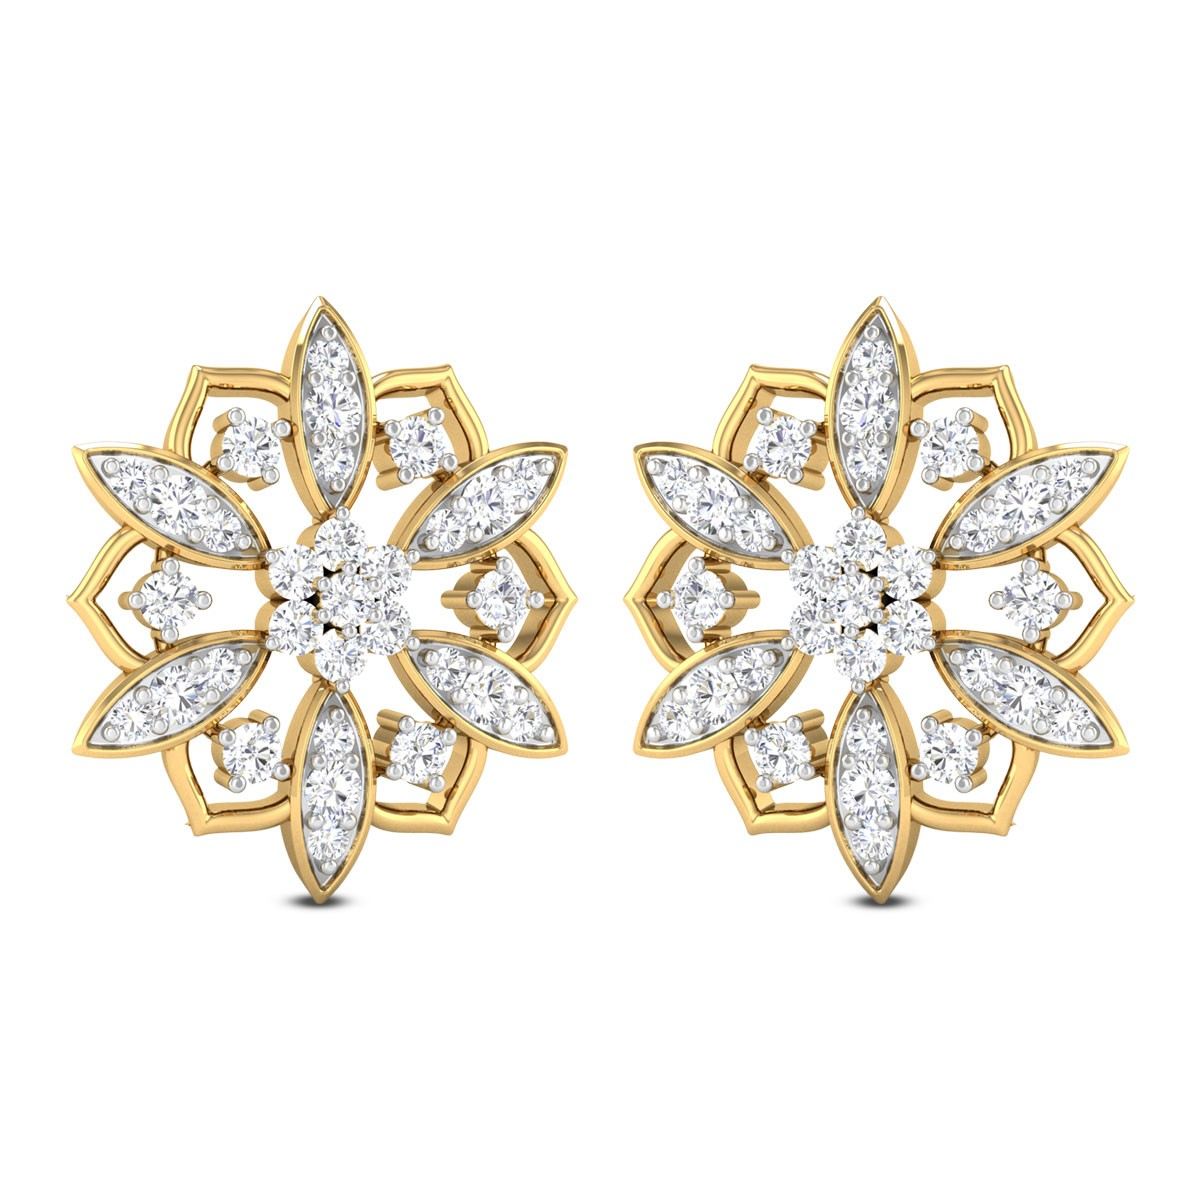 Reagan Floral Diamond Stud Earring